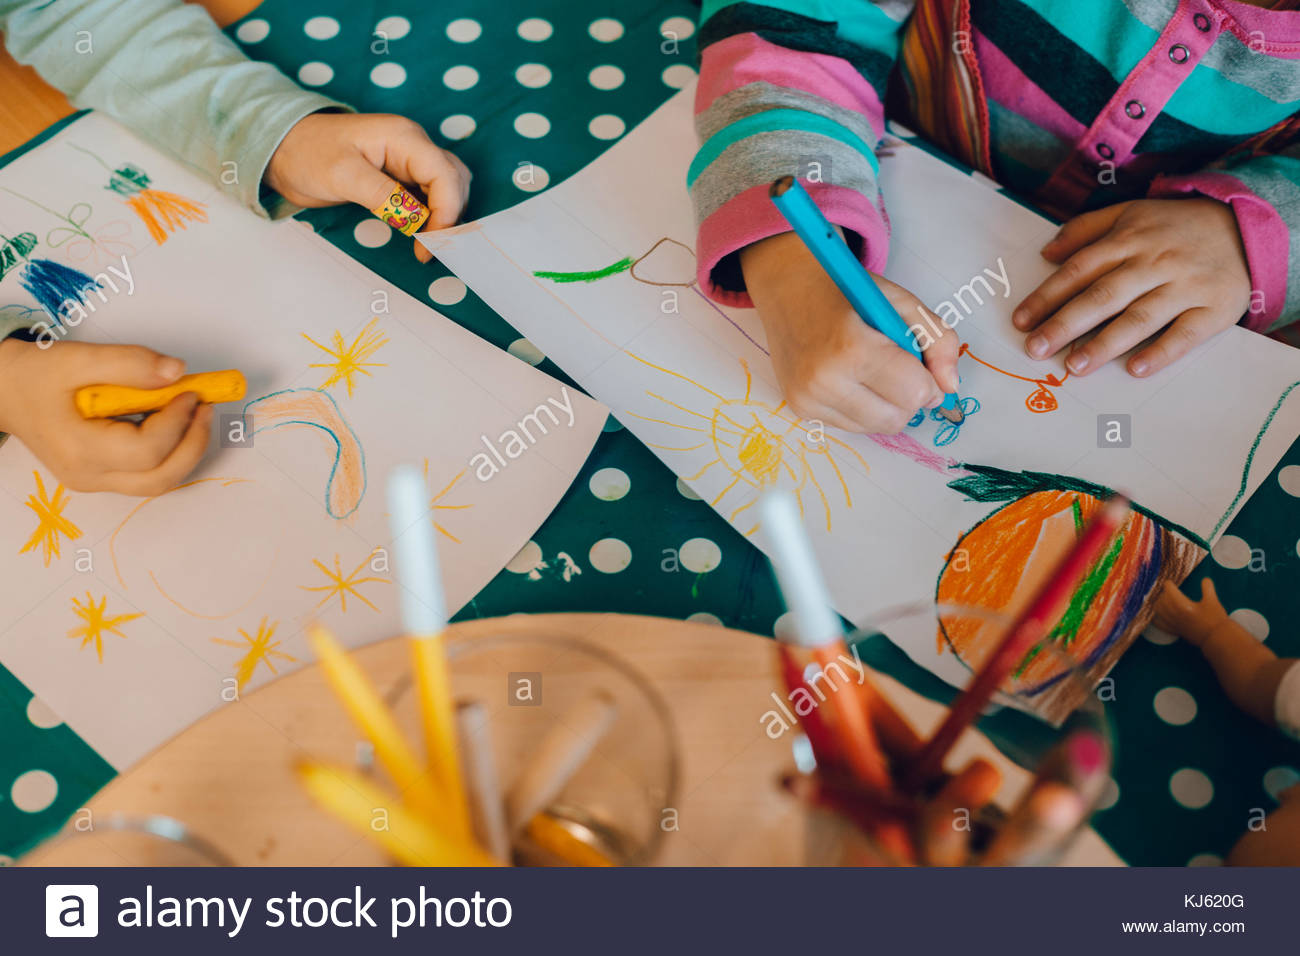 Children painting, top view - Stock Image